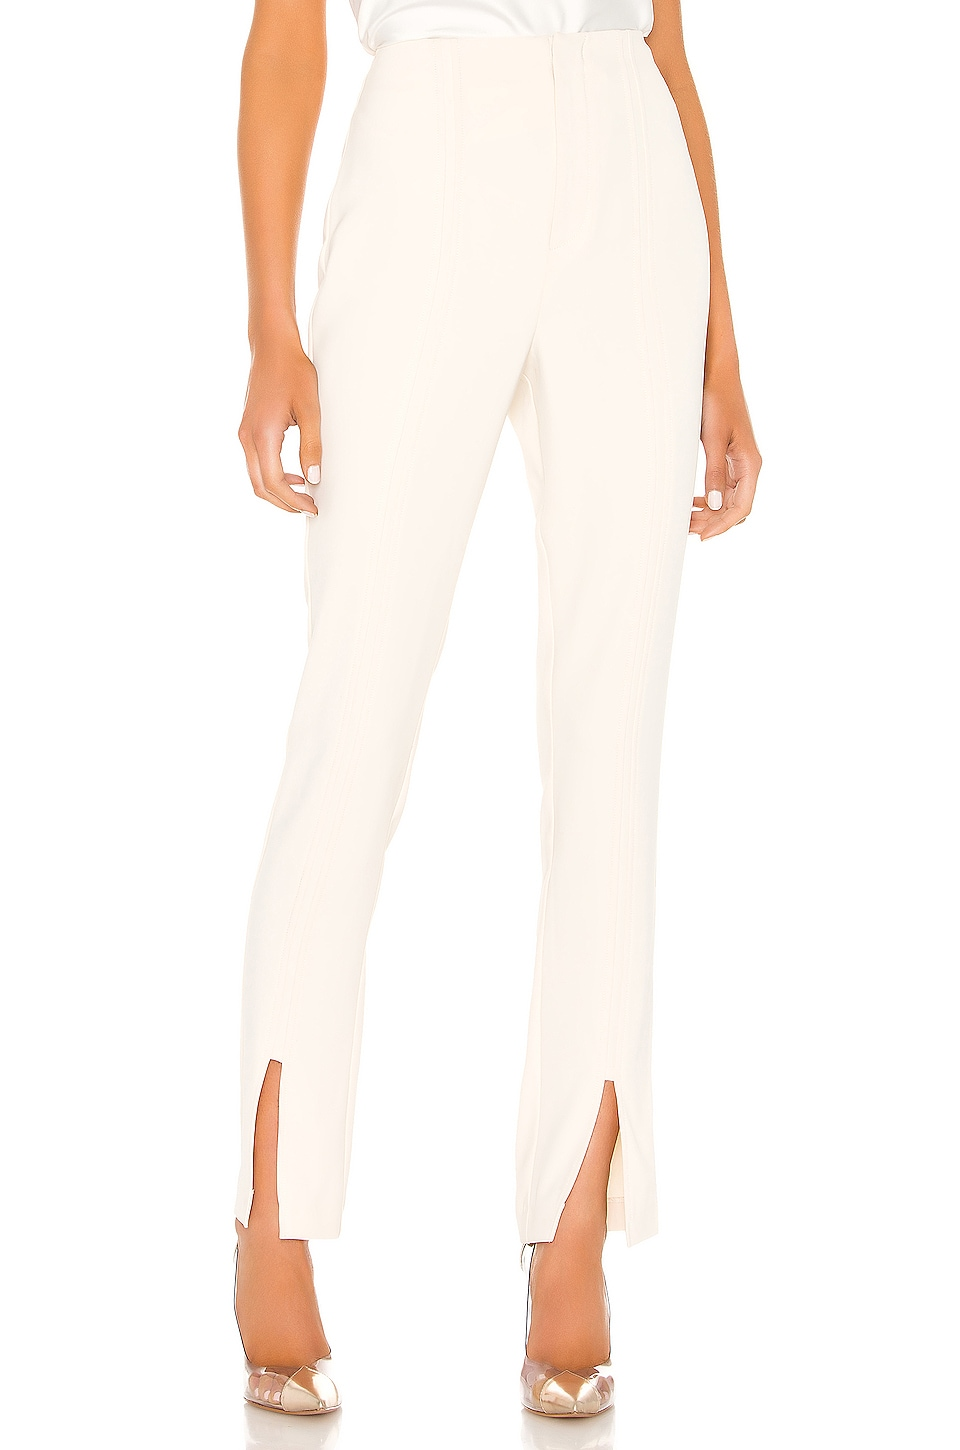 L'Academie The Hanriette Pant in Ivory